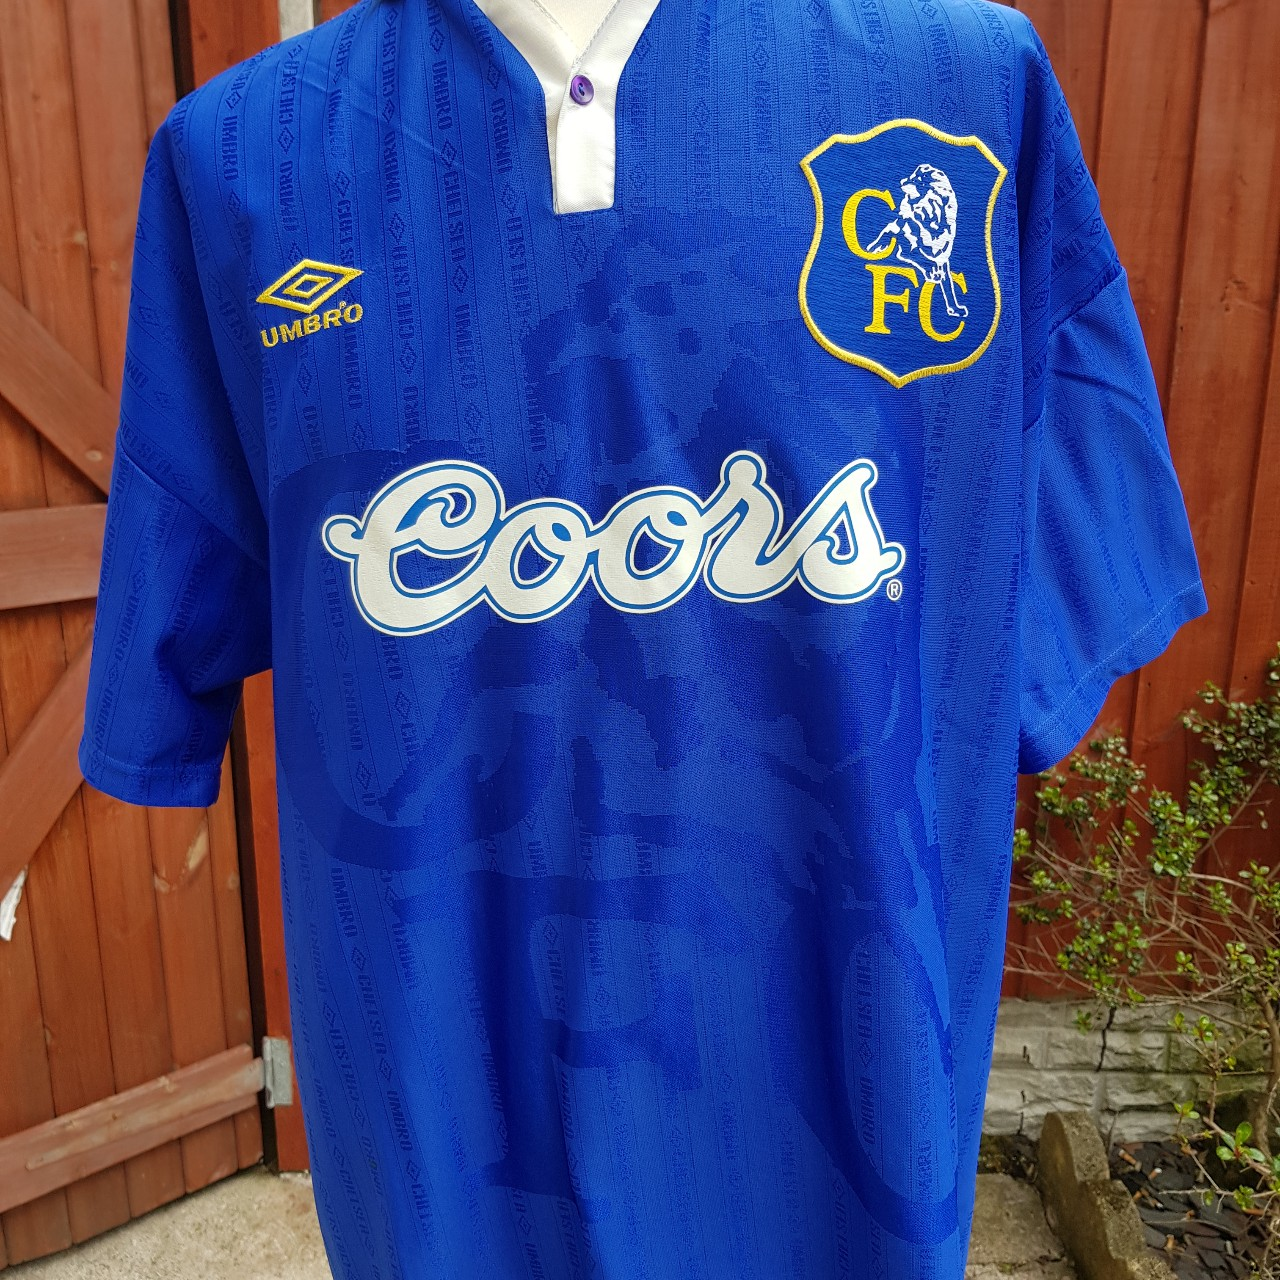 online store 0c787 71aec CHELSEA FOOTBALL SHIRT 1995 HOME TOP VERY GOOD ...